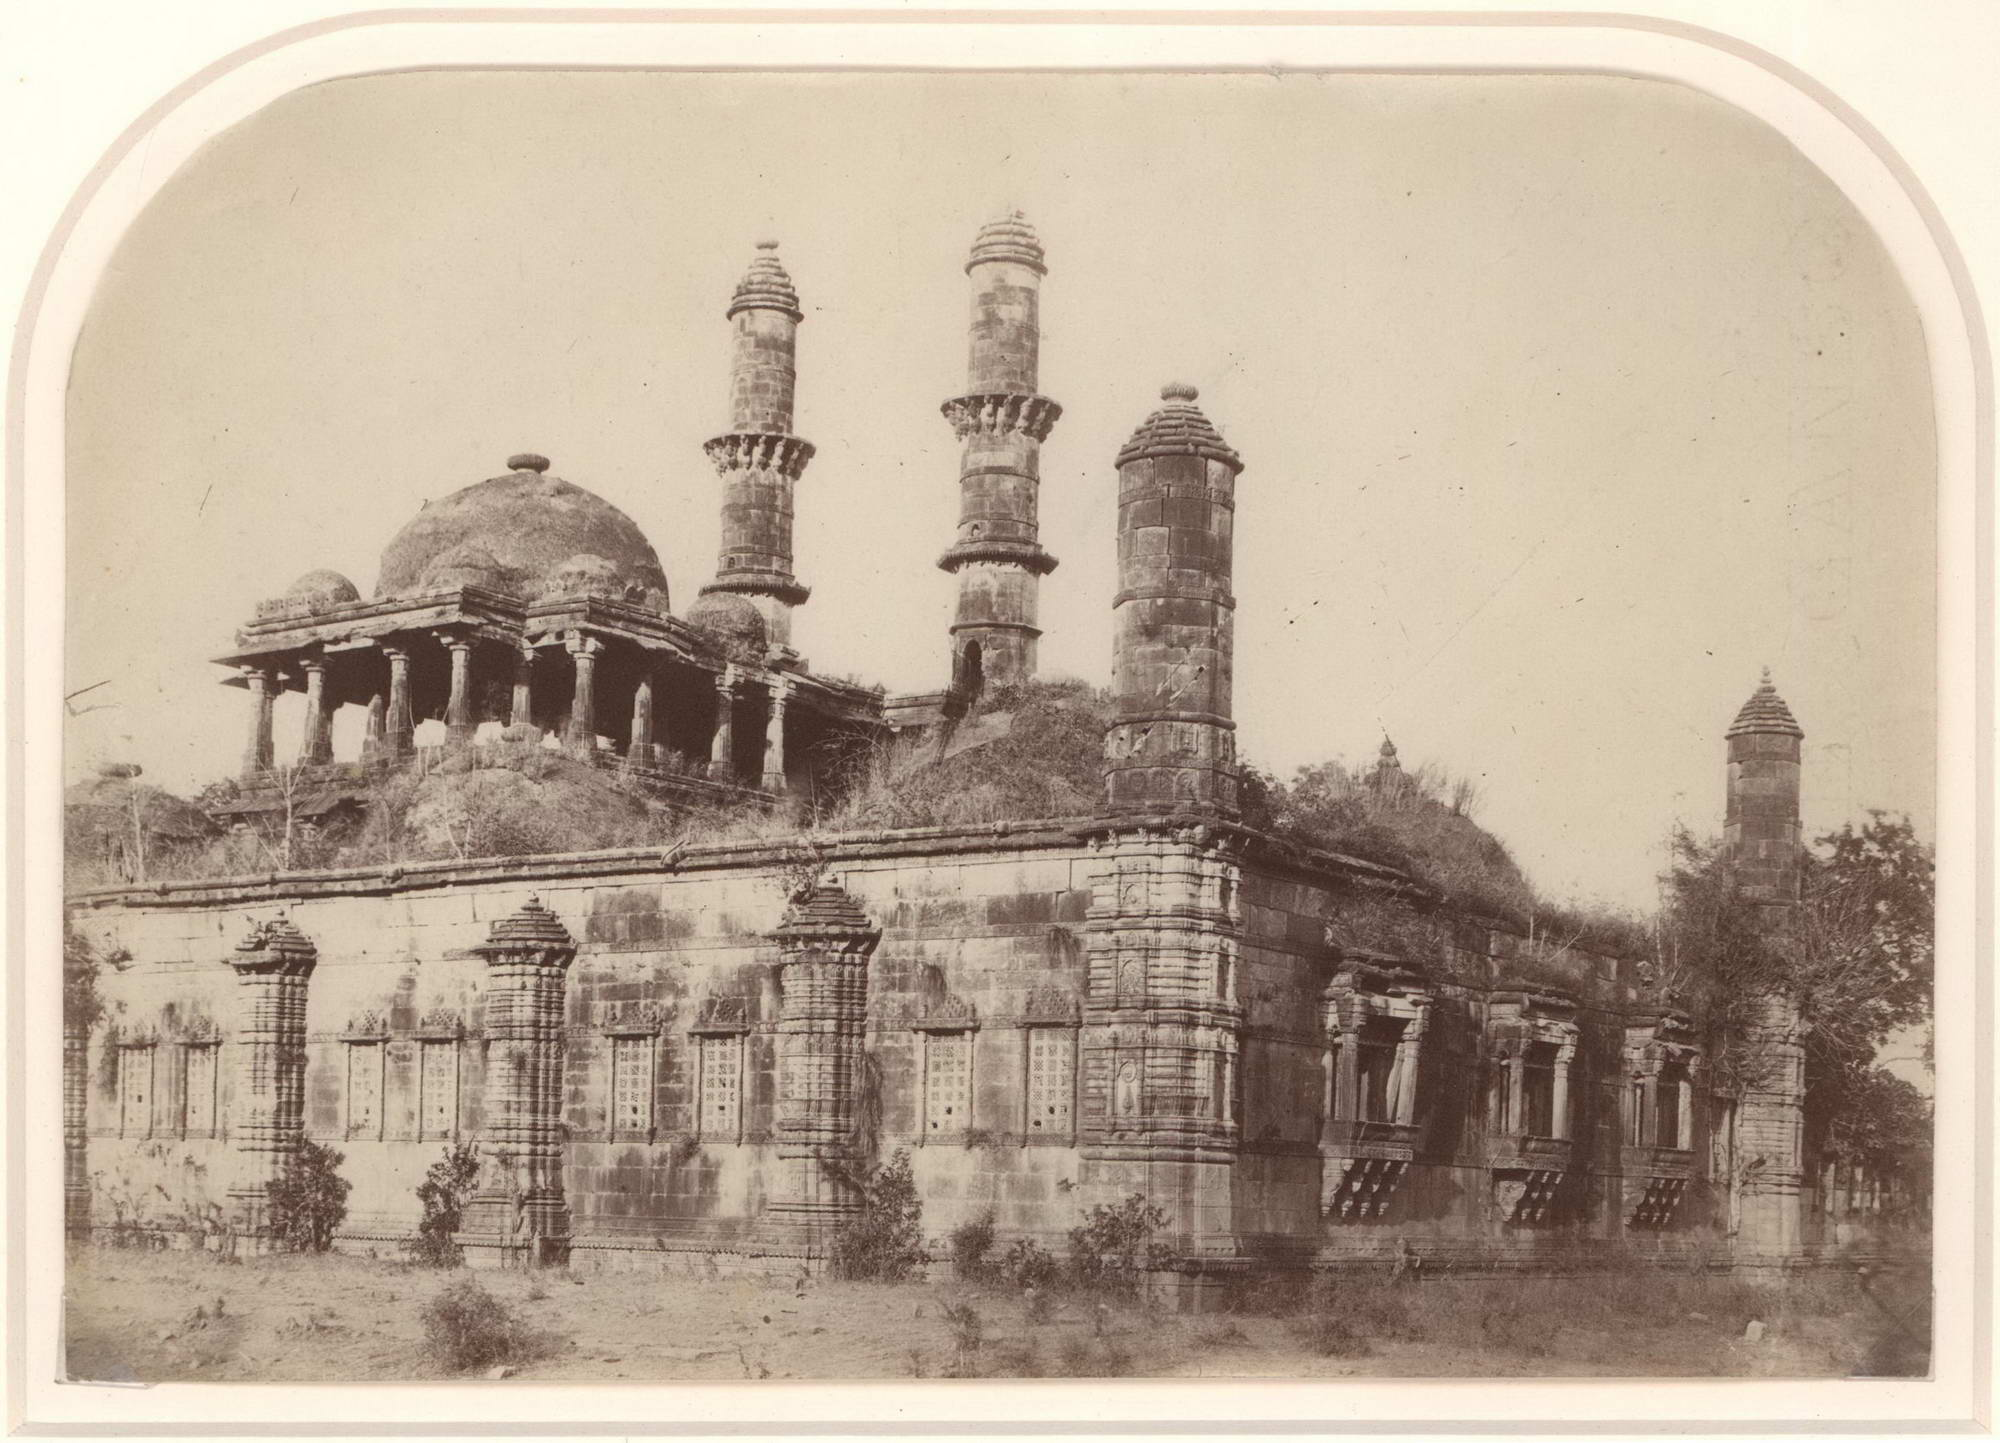 Architectural Studies And Group Portraits]. [India.